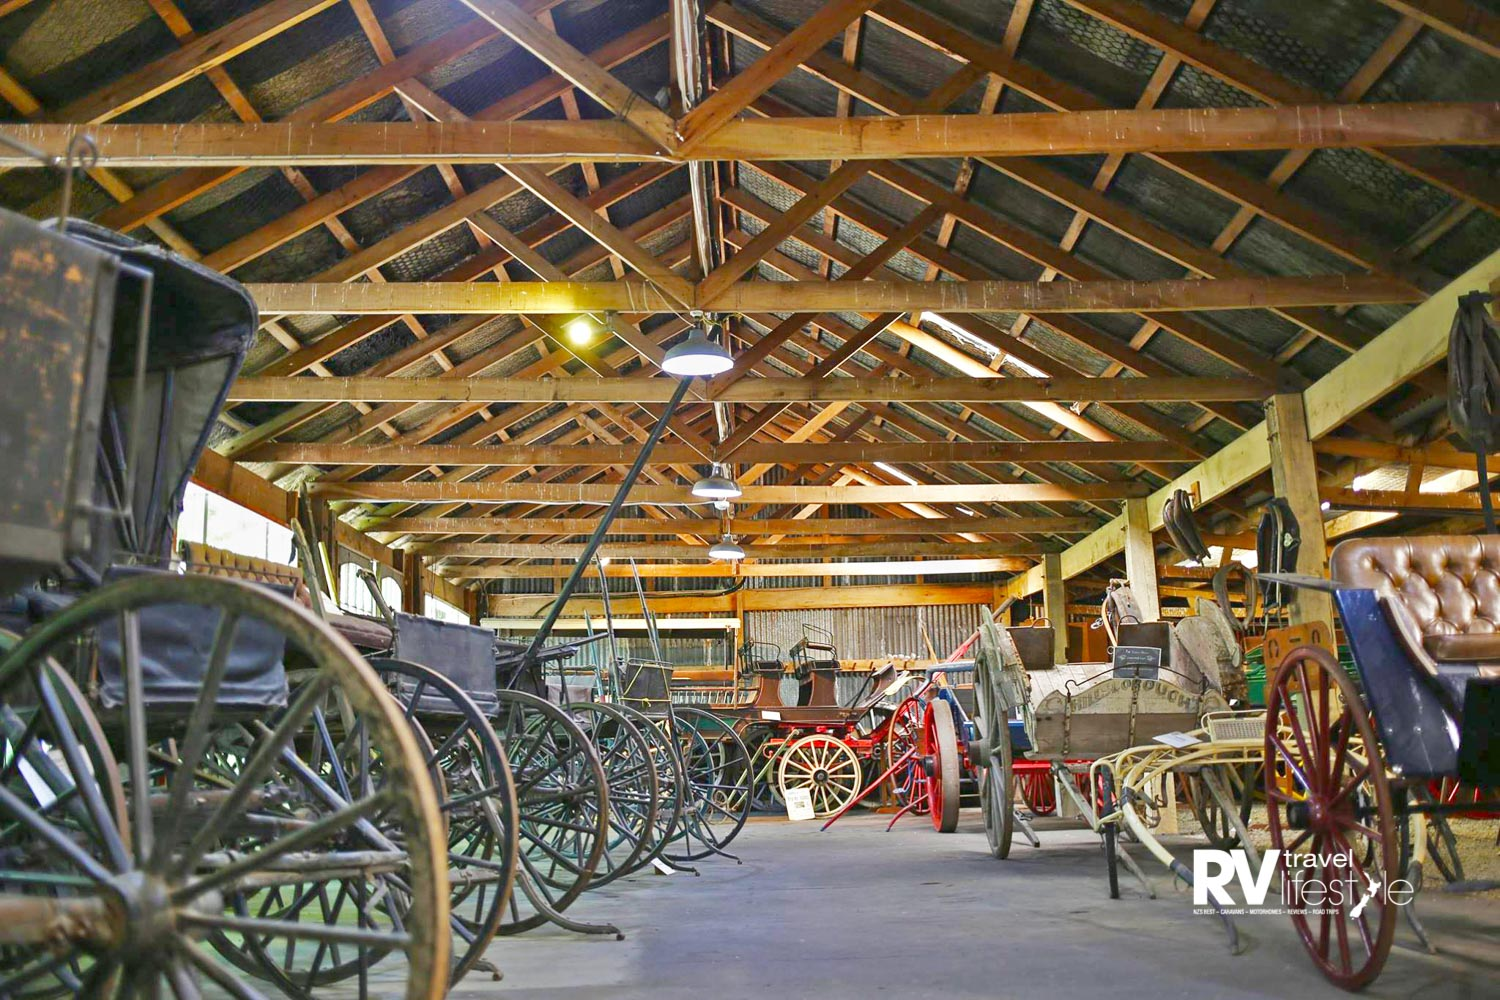 One of the finest and largest collections of horse-drawn vehicles in the country